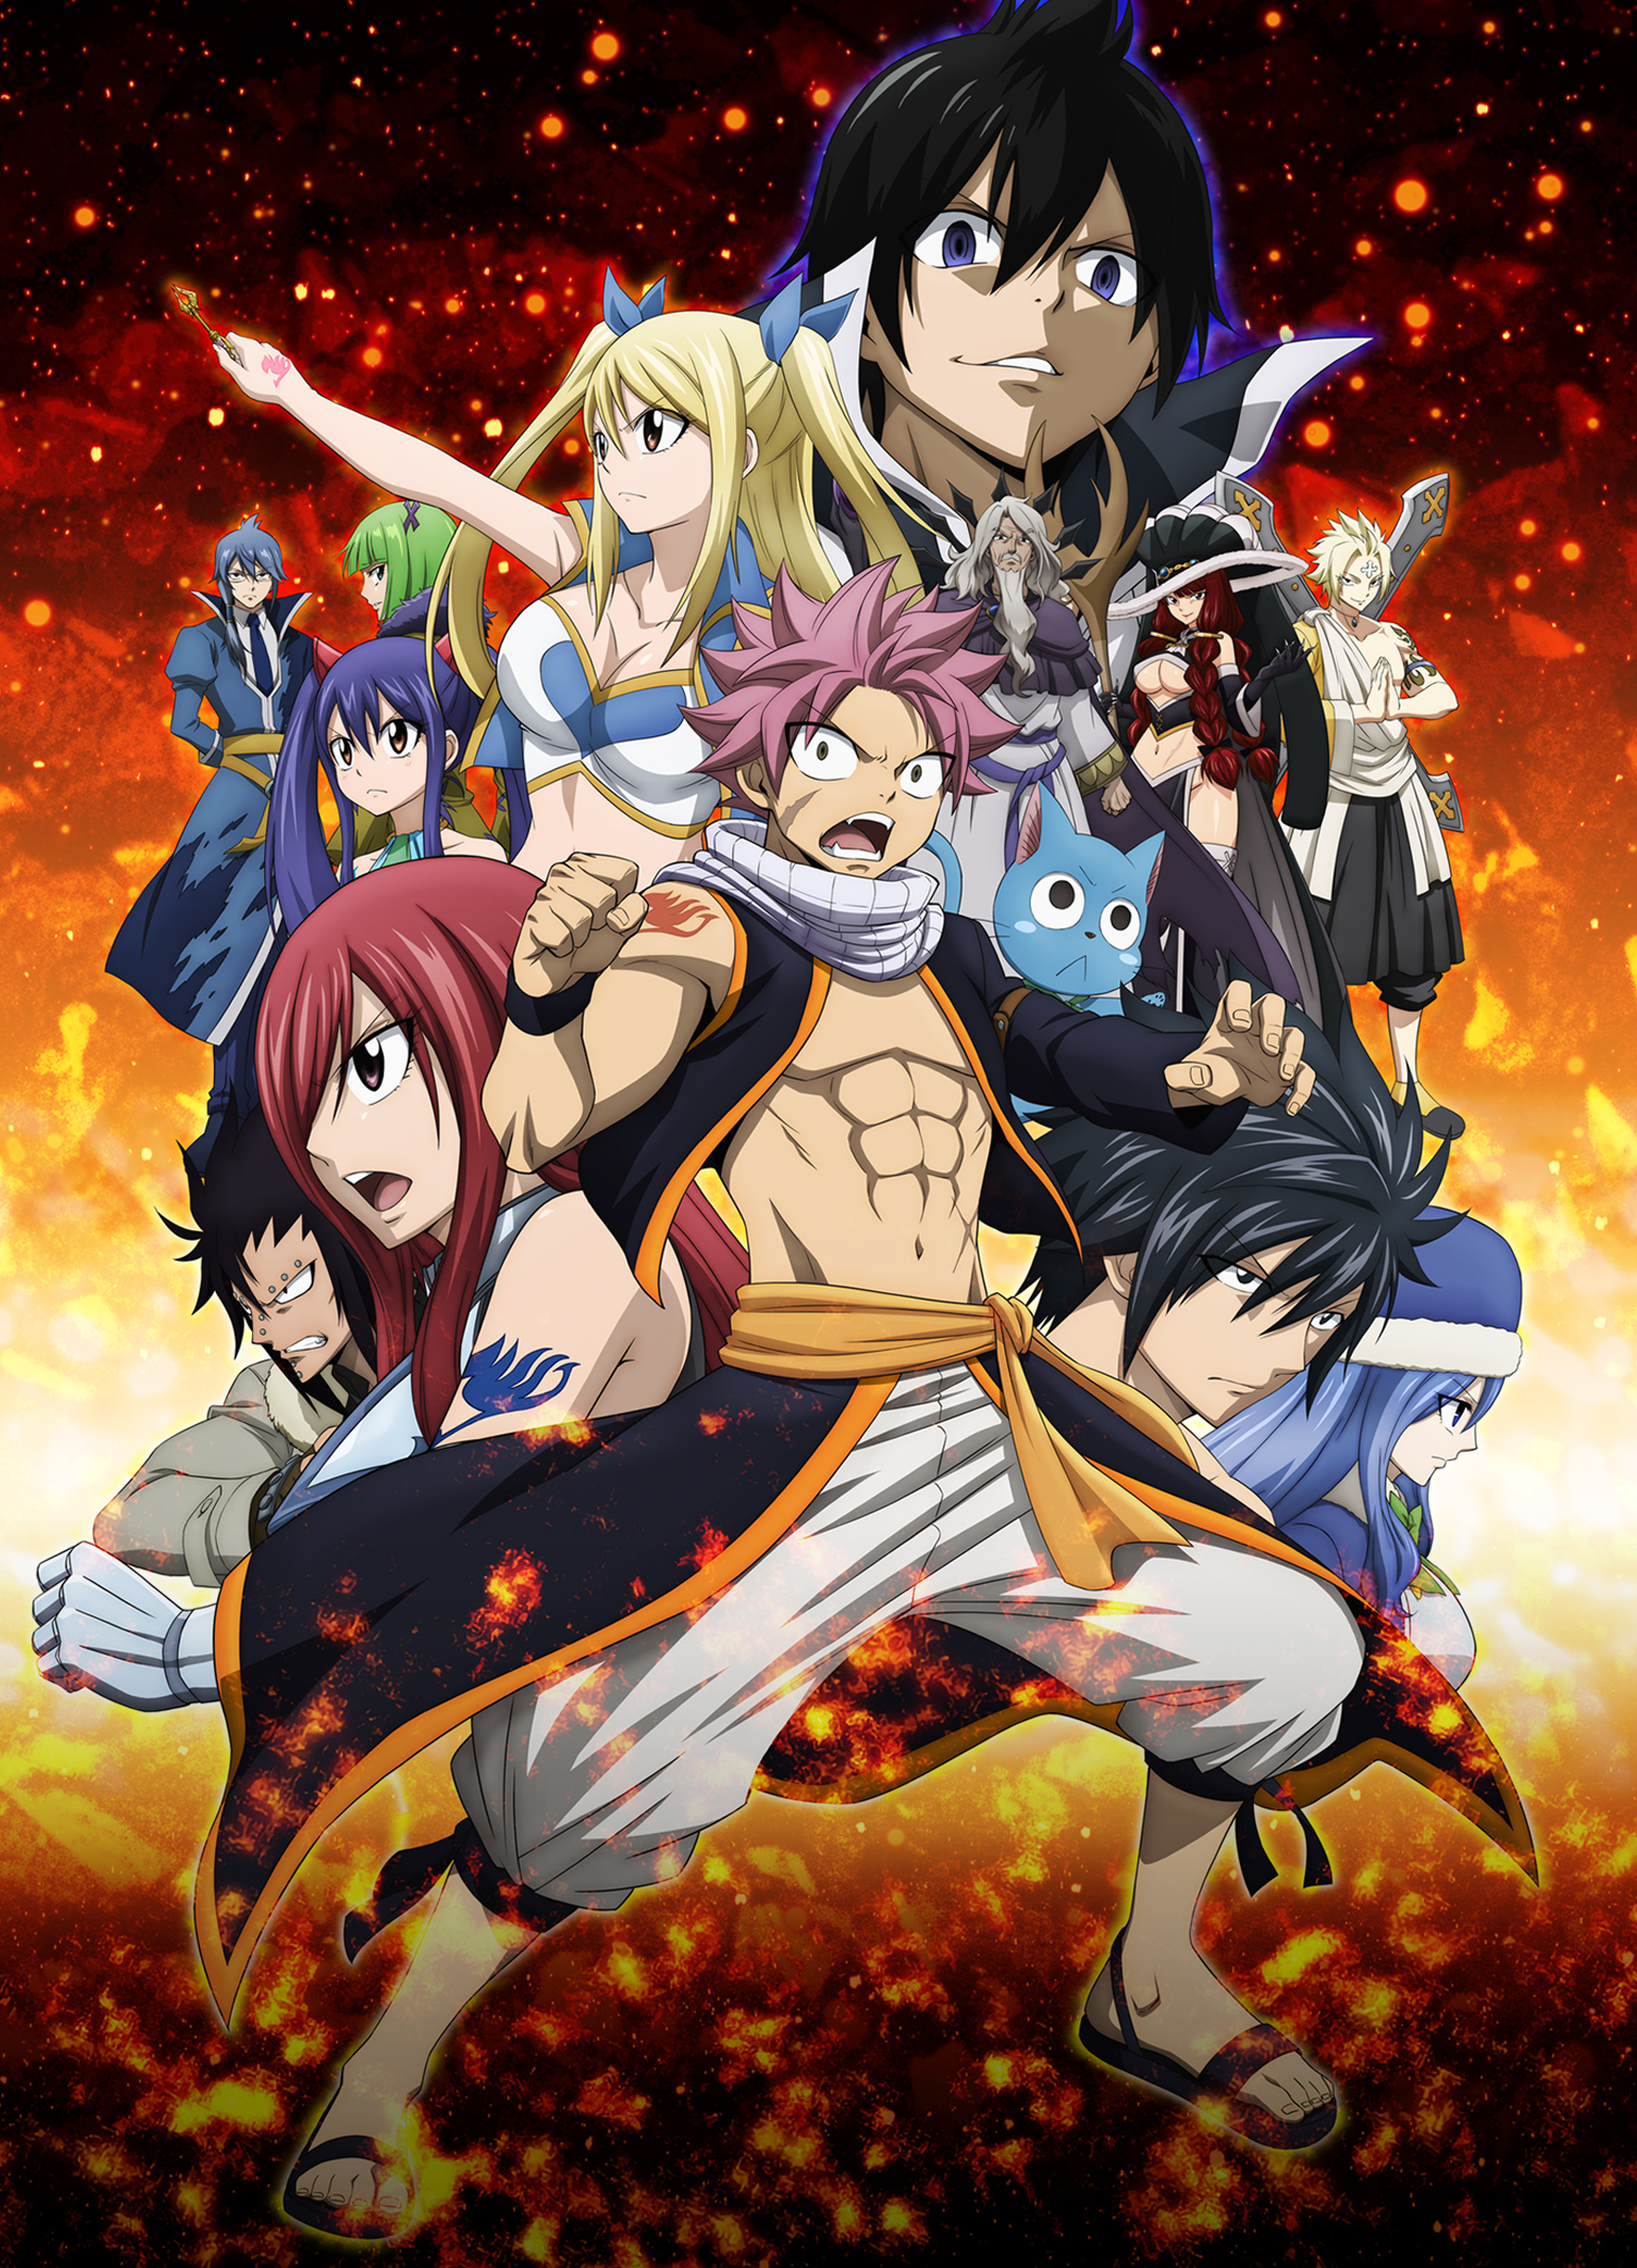 Watch Fairy Tail Episodes Sub & Dub | Action/Adventure